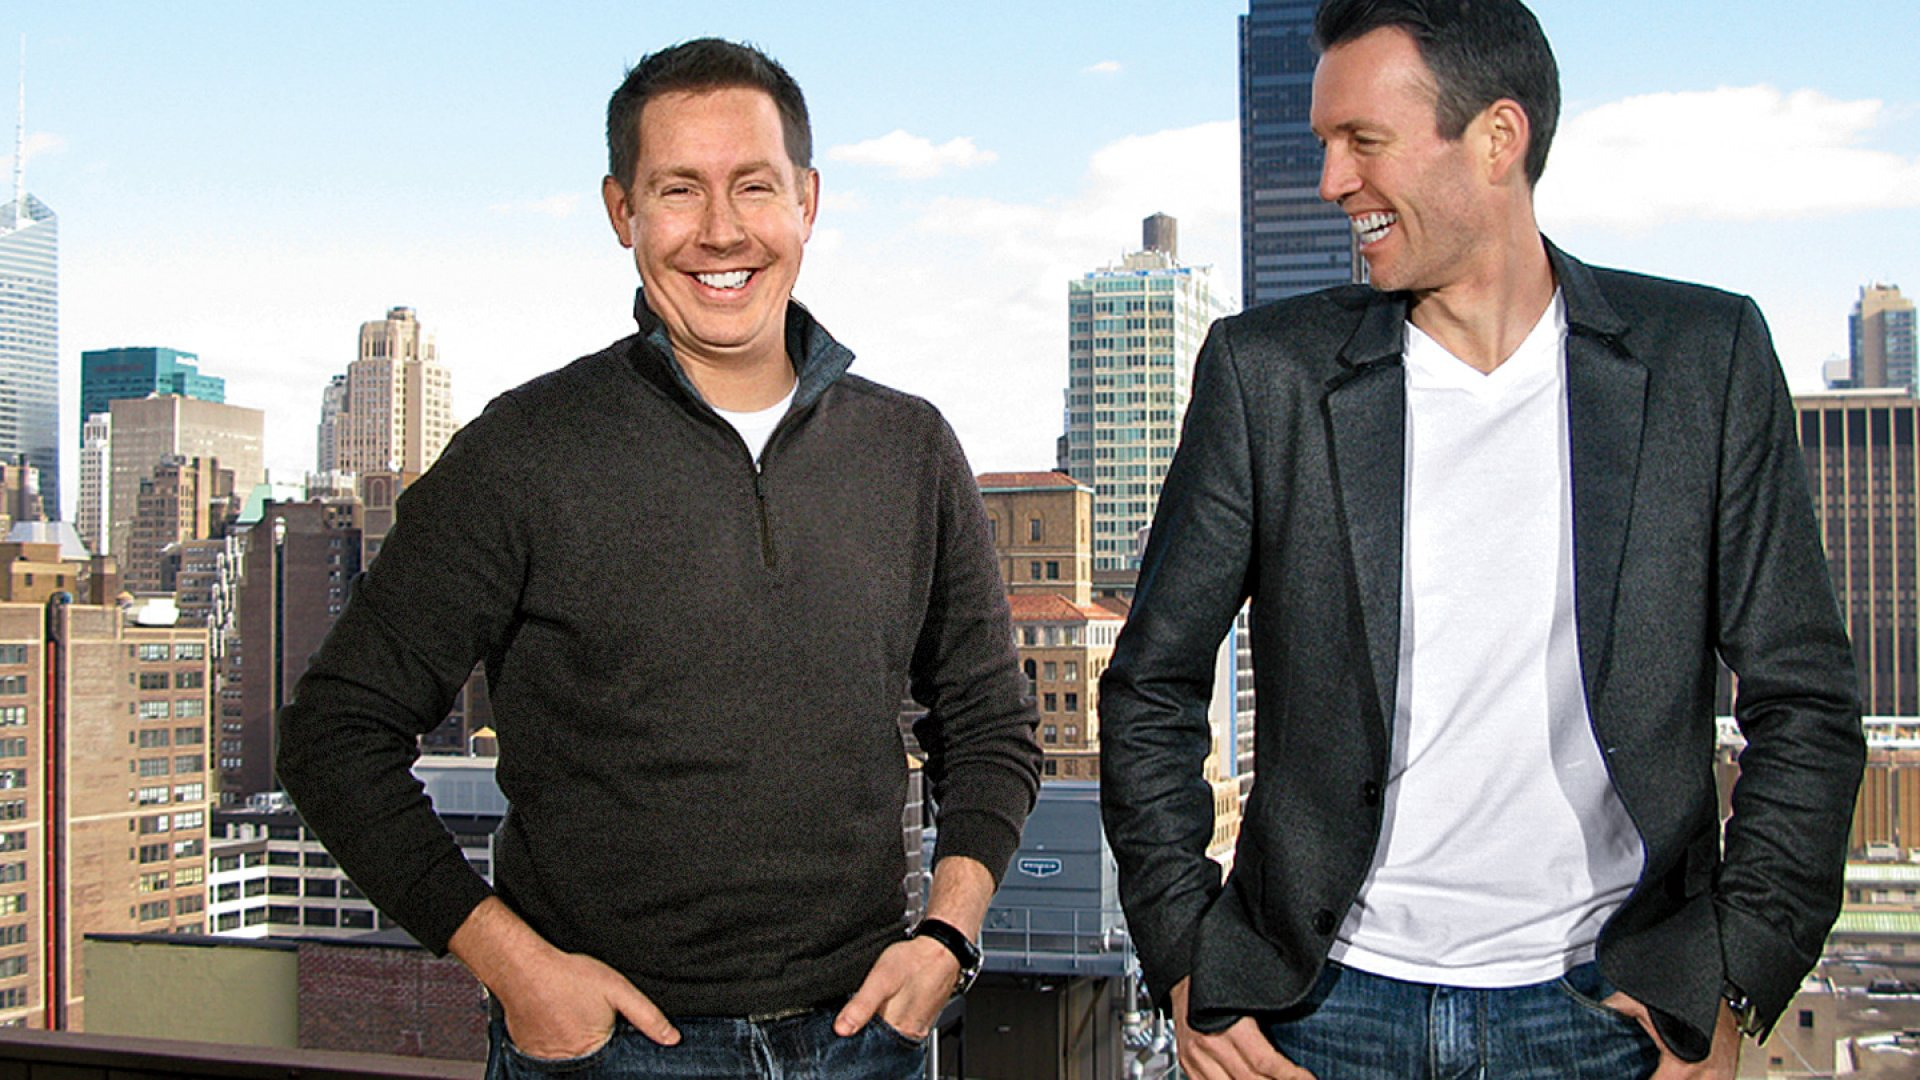 <b>On Top of the World:</b> Visual Revenue co-founders Charlie Holbech (left) and Dennis Mortensen.